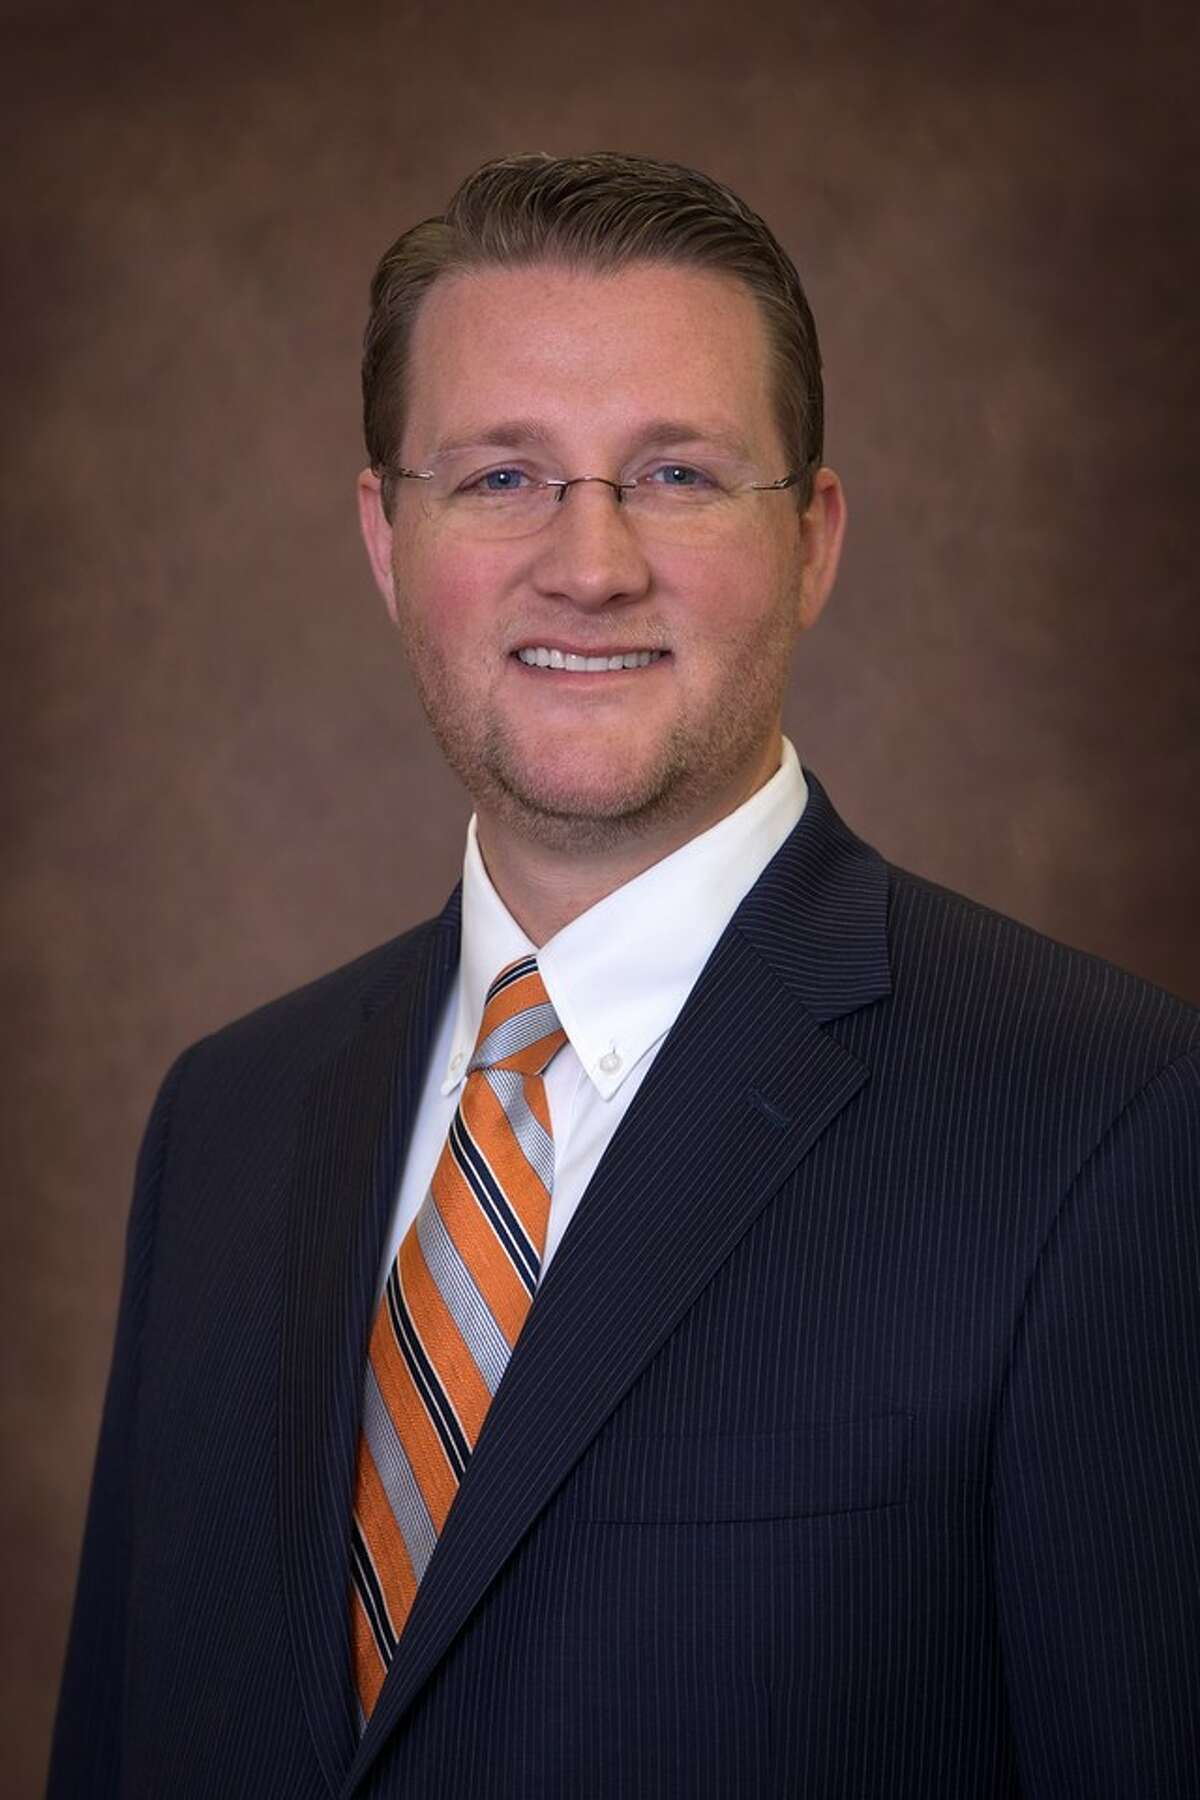 Midland Health appointed Samuel Moore as the new vice president and chief financial officer in February.